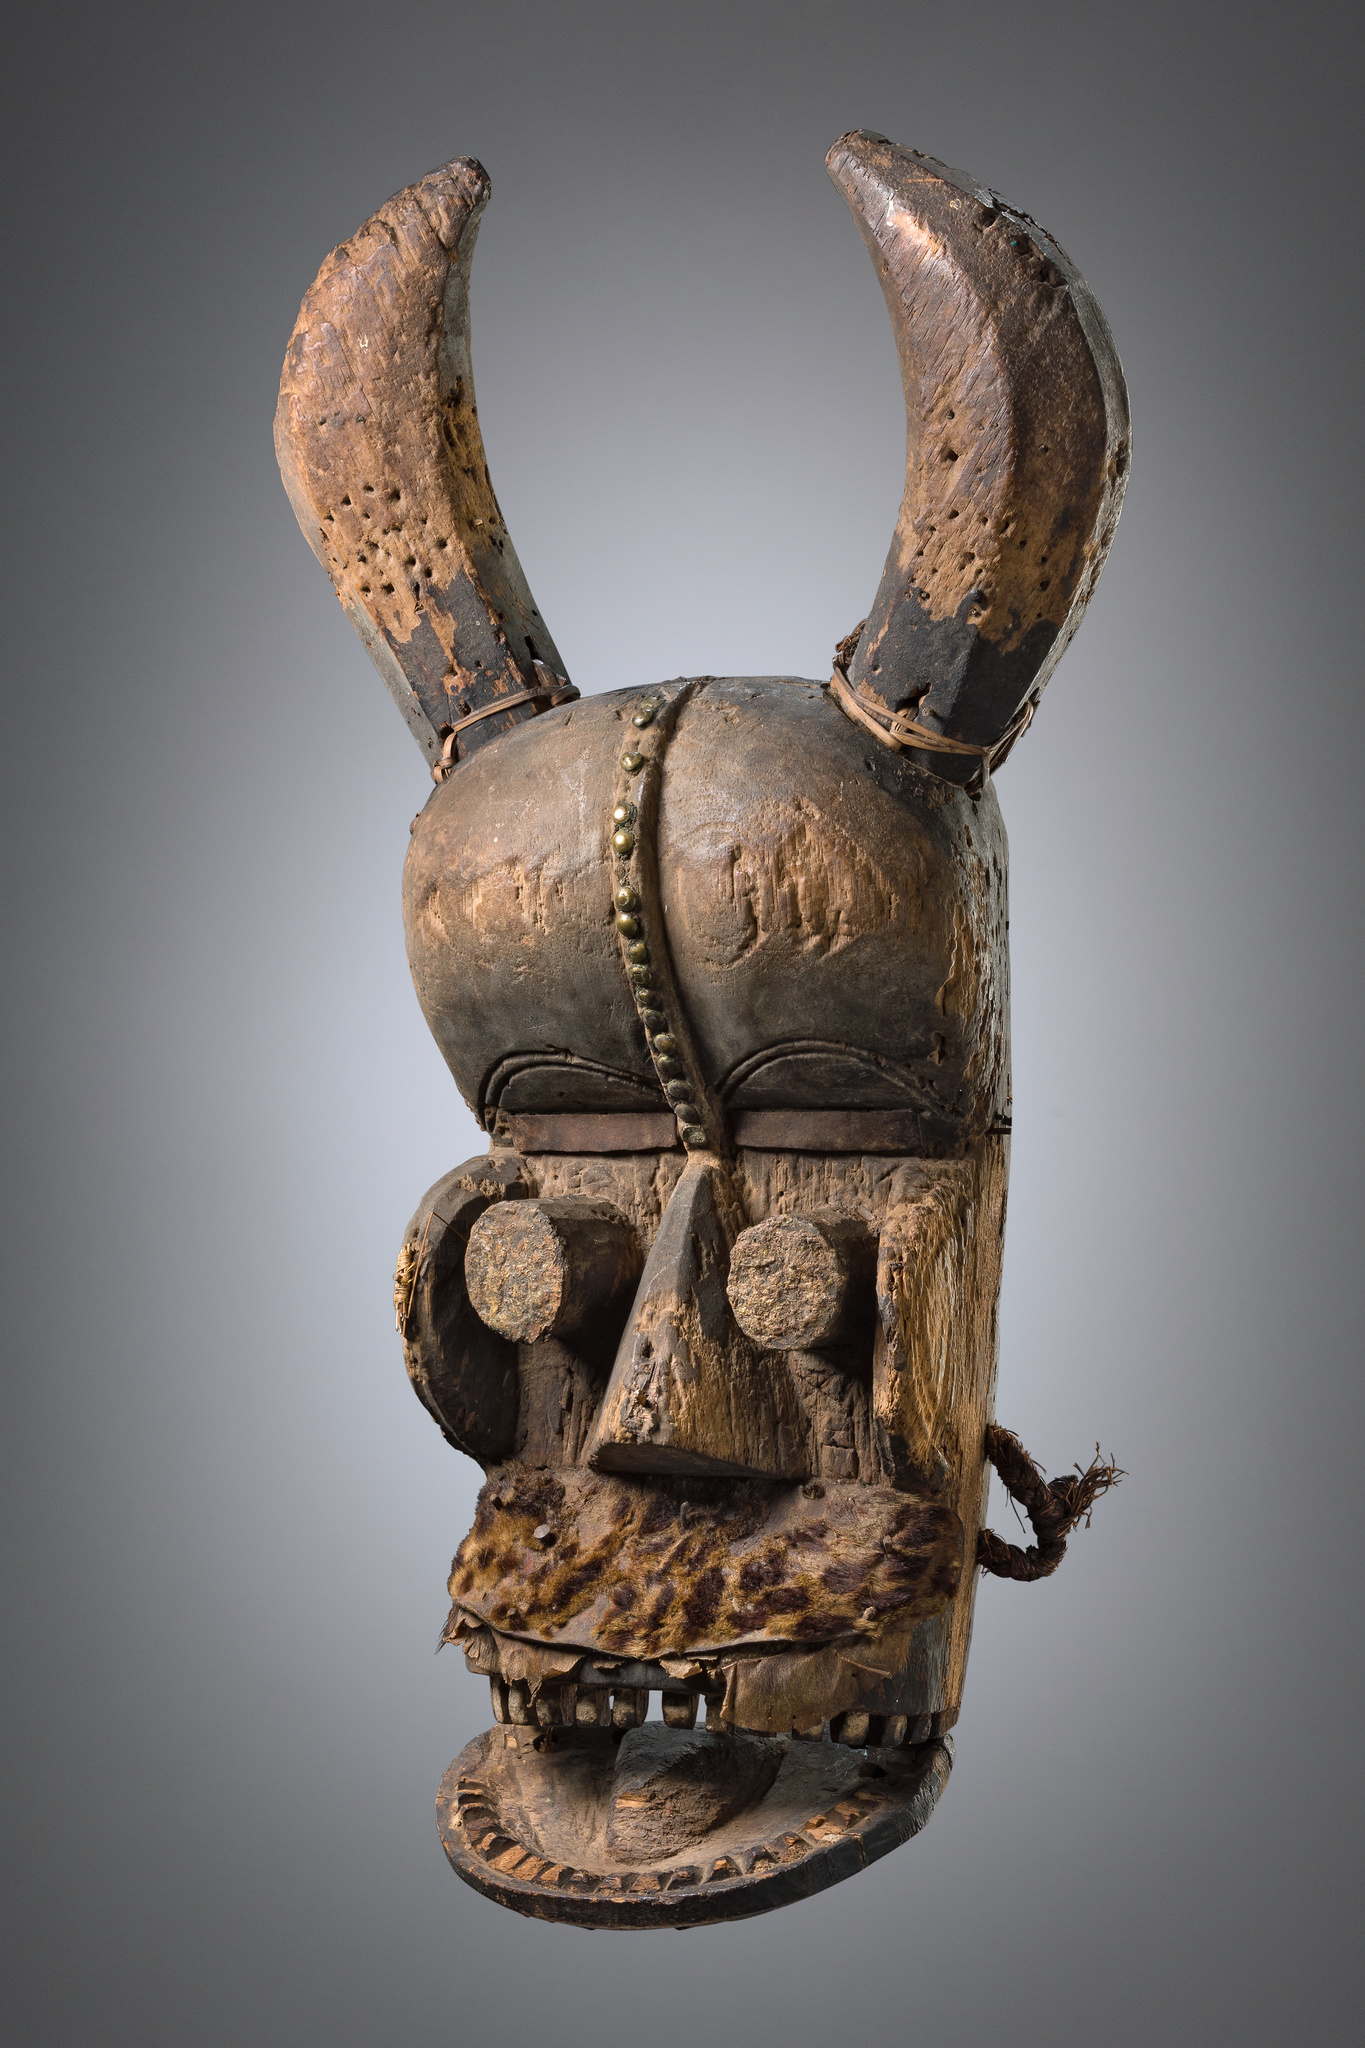 Large mask with articulated jaw